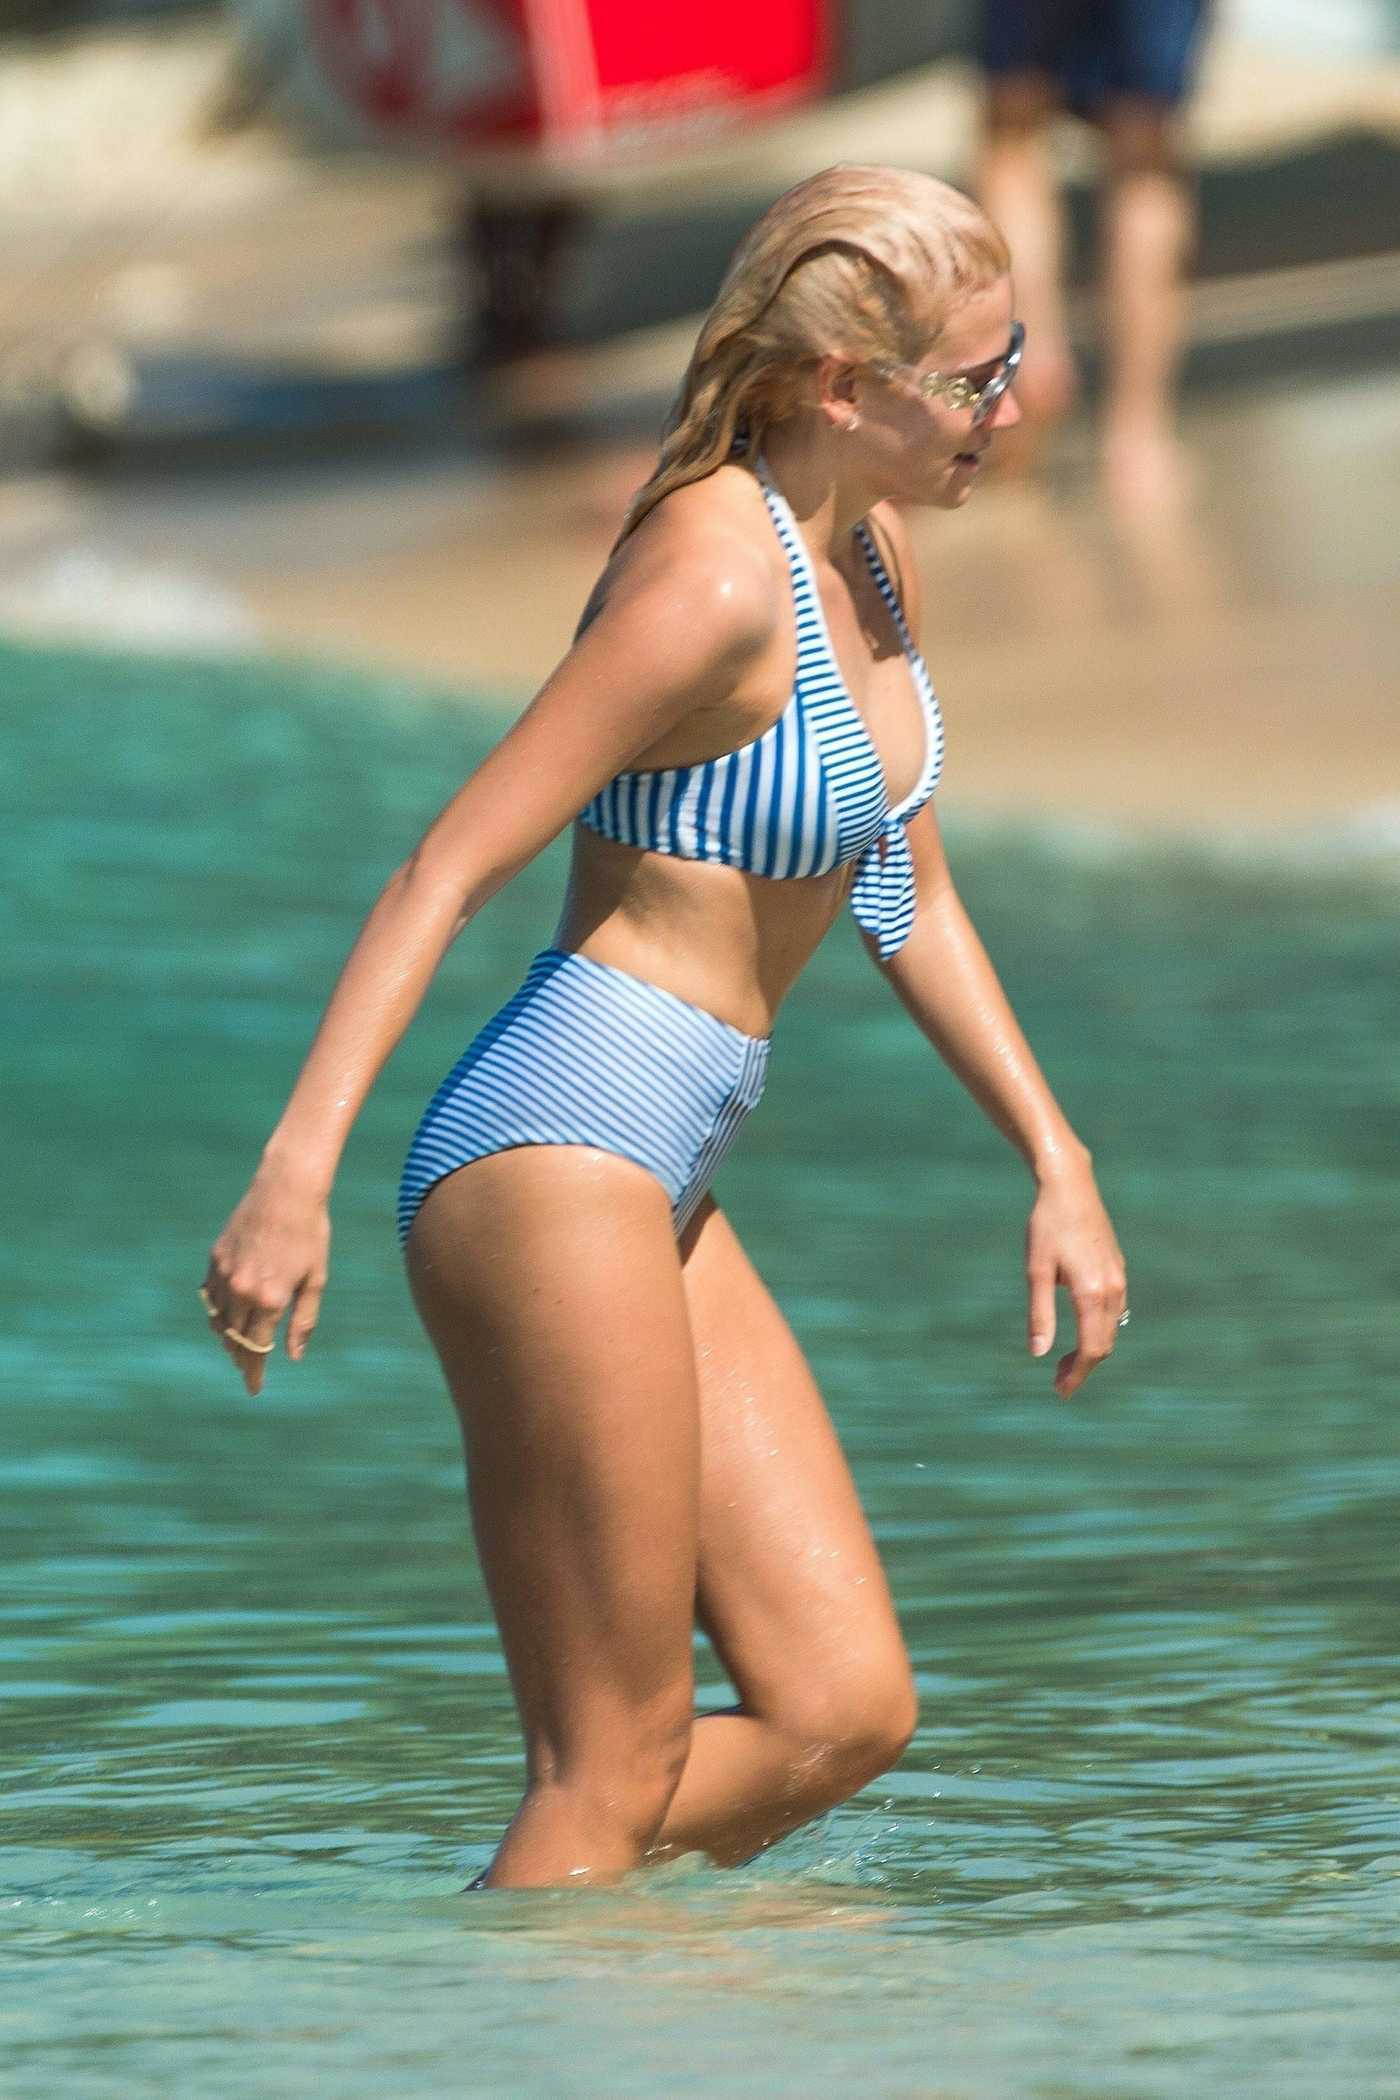 Pixie Lott in a Striped Bikini on the Beach in Barbados 12/05/2018